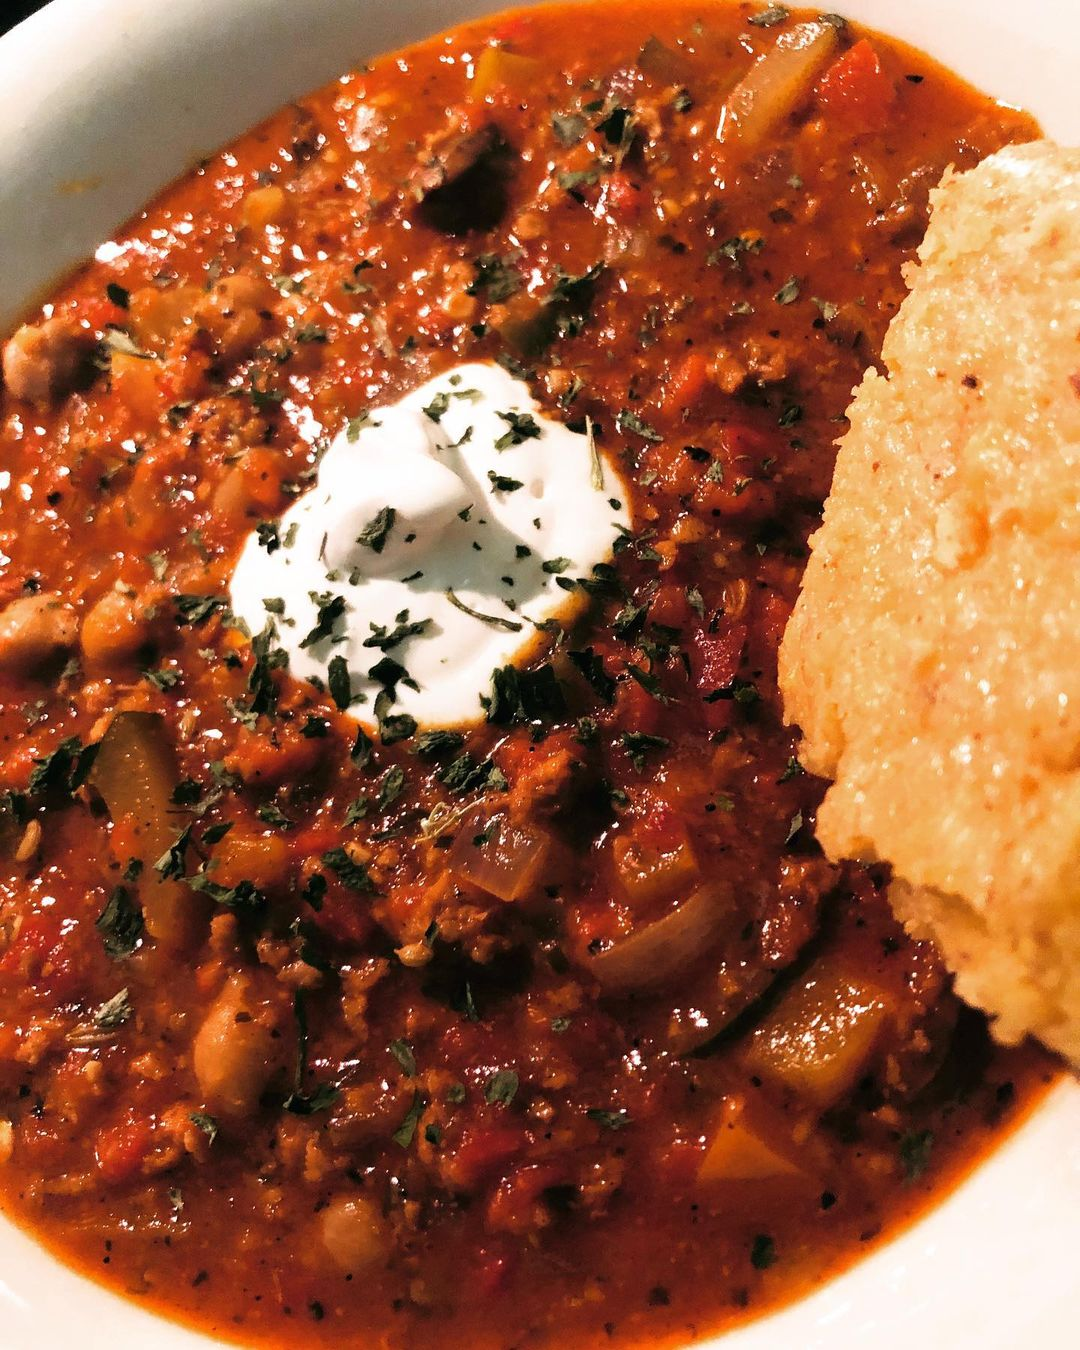 i had to be creative and create a kidney friendly chili with display image  dbbbe990